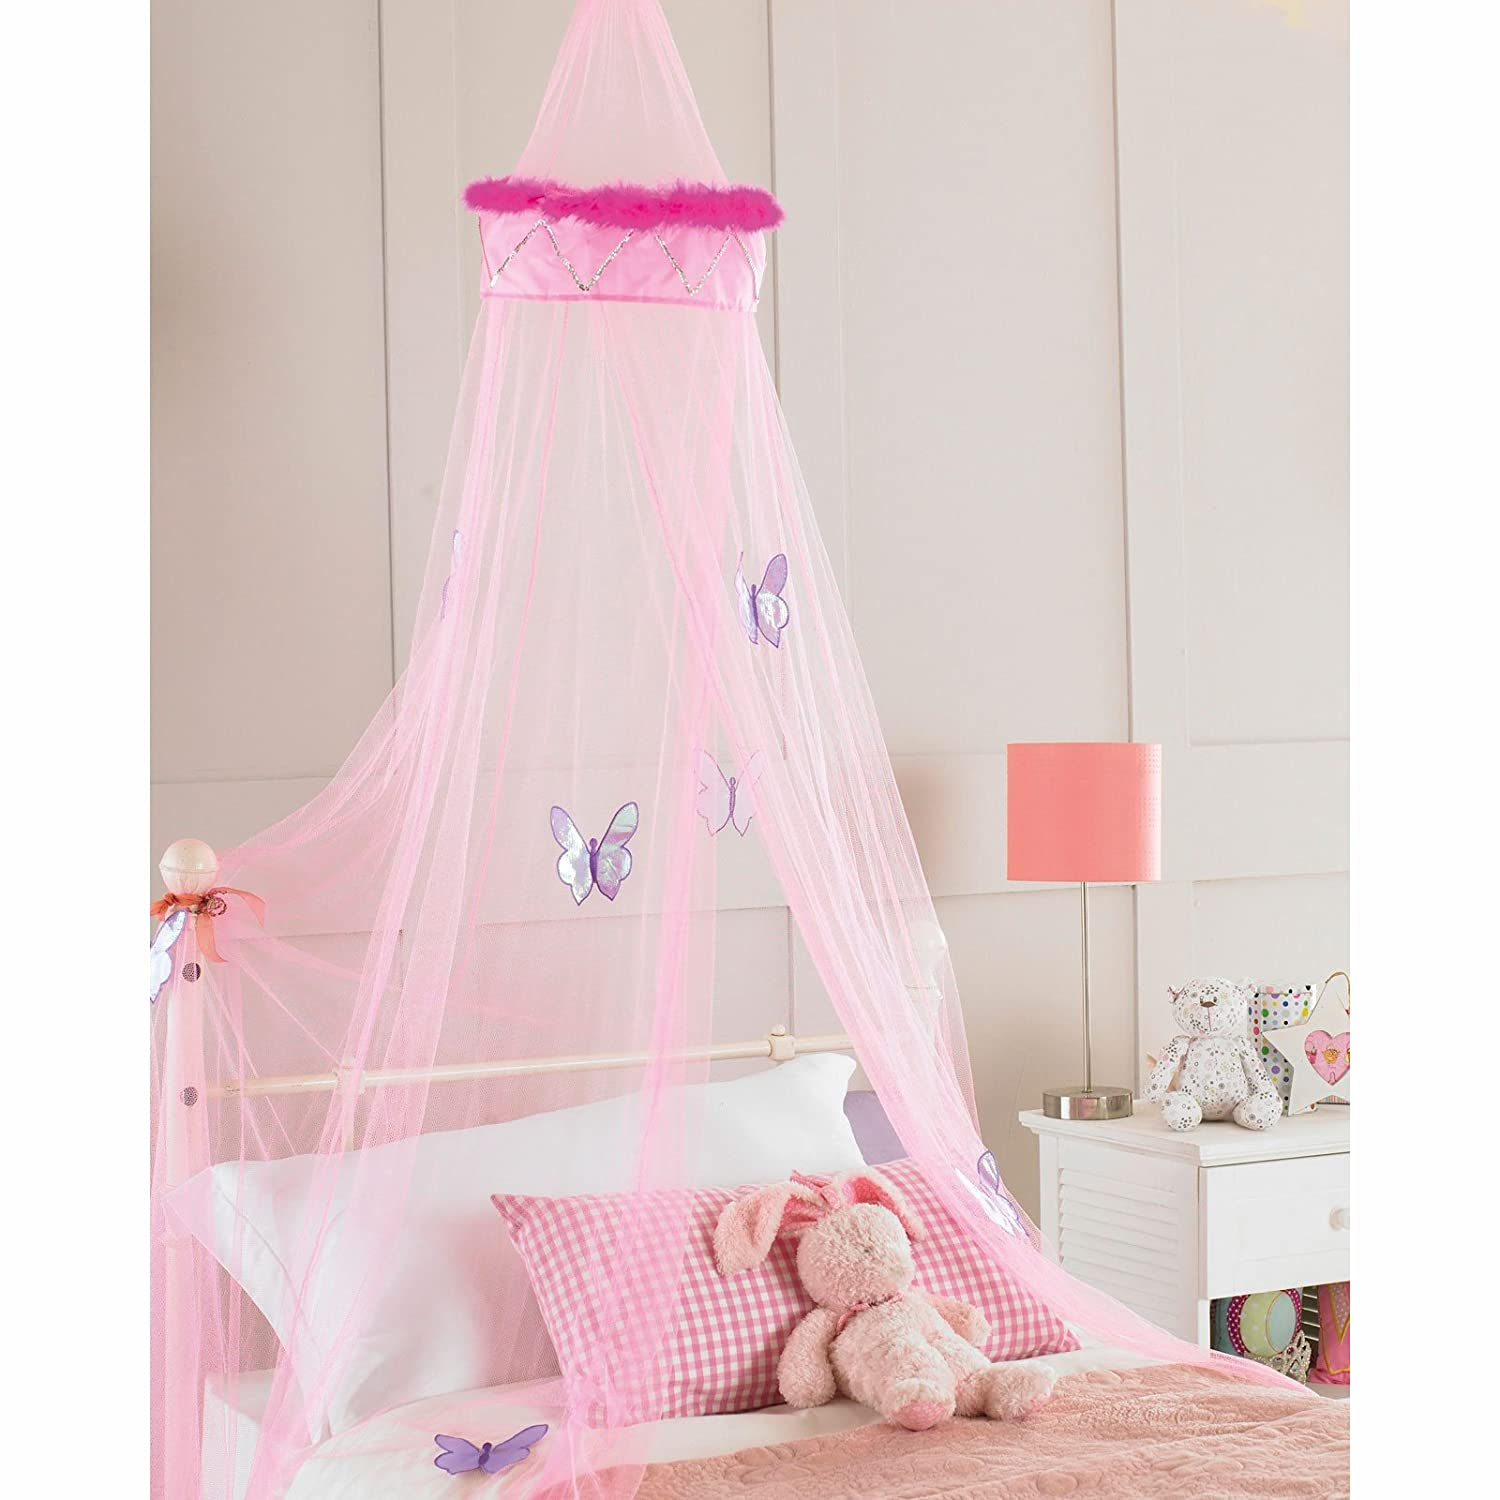 Childrens Girls Bed Canopy Mosquito Fly Netting Net New 30x230cm - Pink Faux Fur Country Club